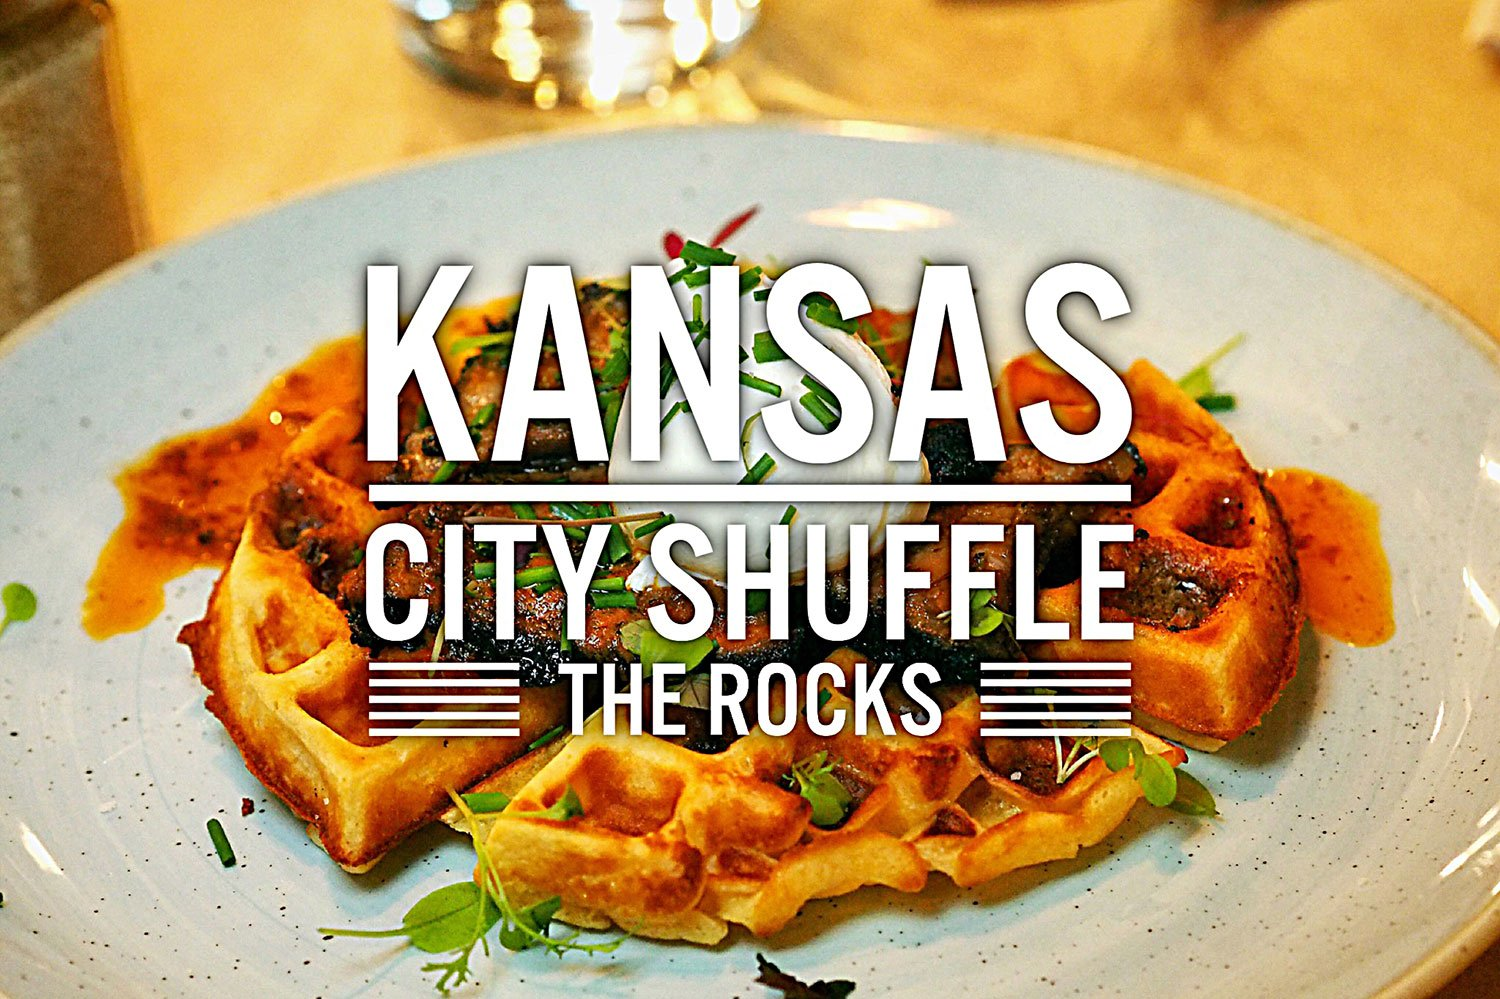 Kansas City Shuffle, The Rocks: Sydney Good Blog Review